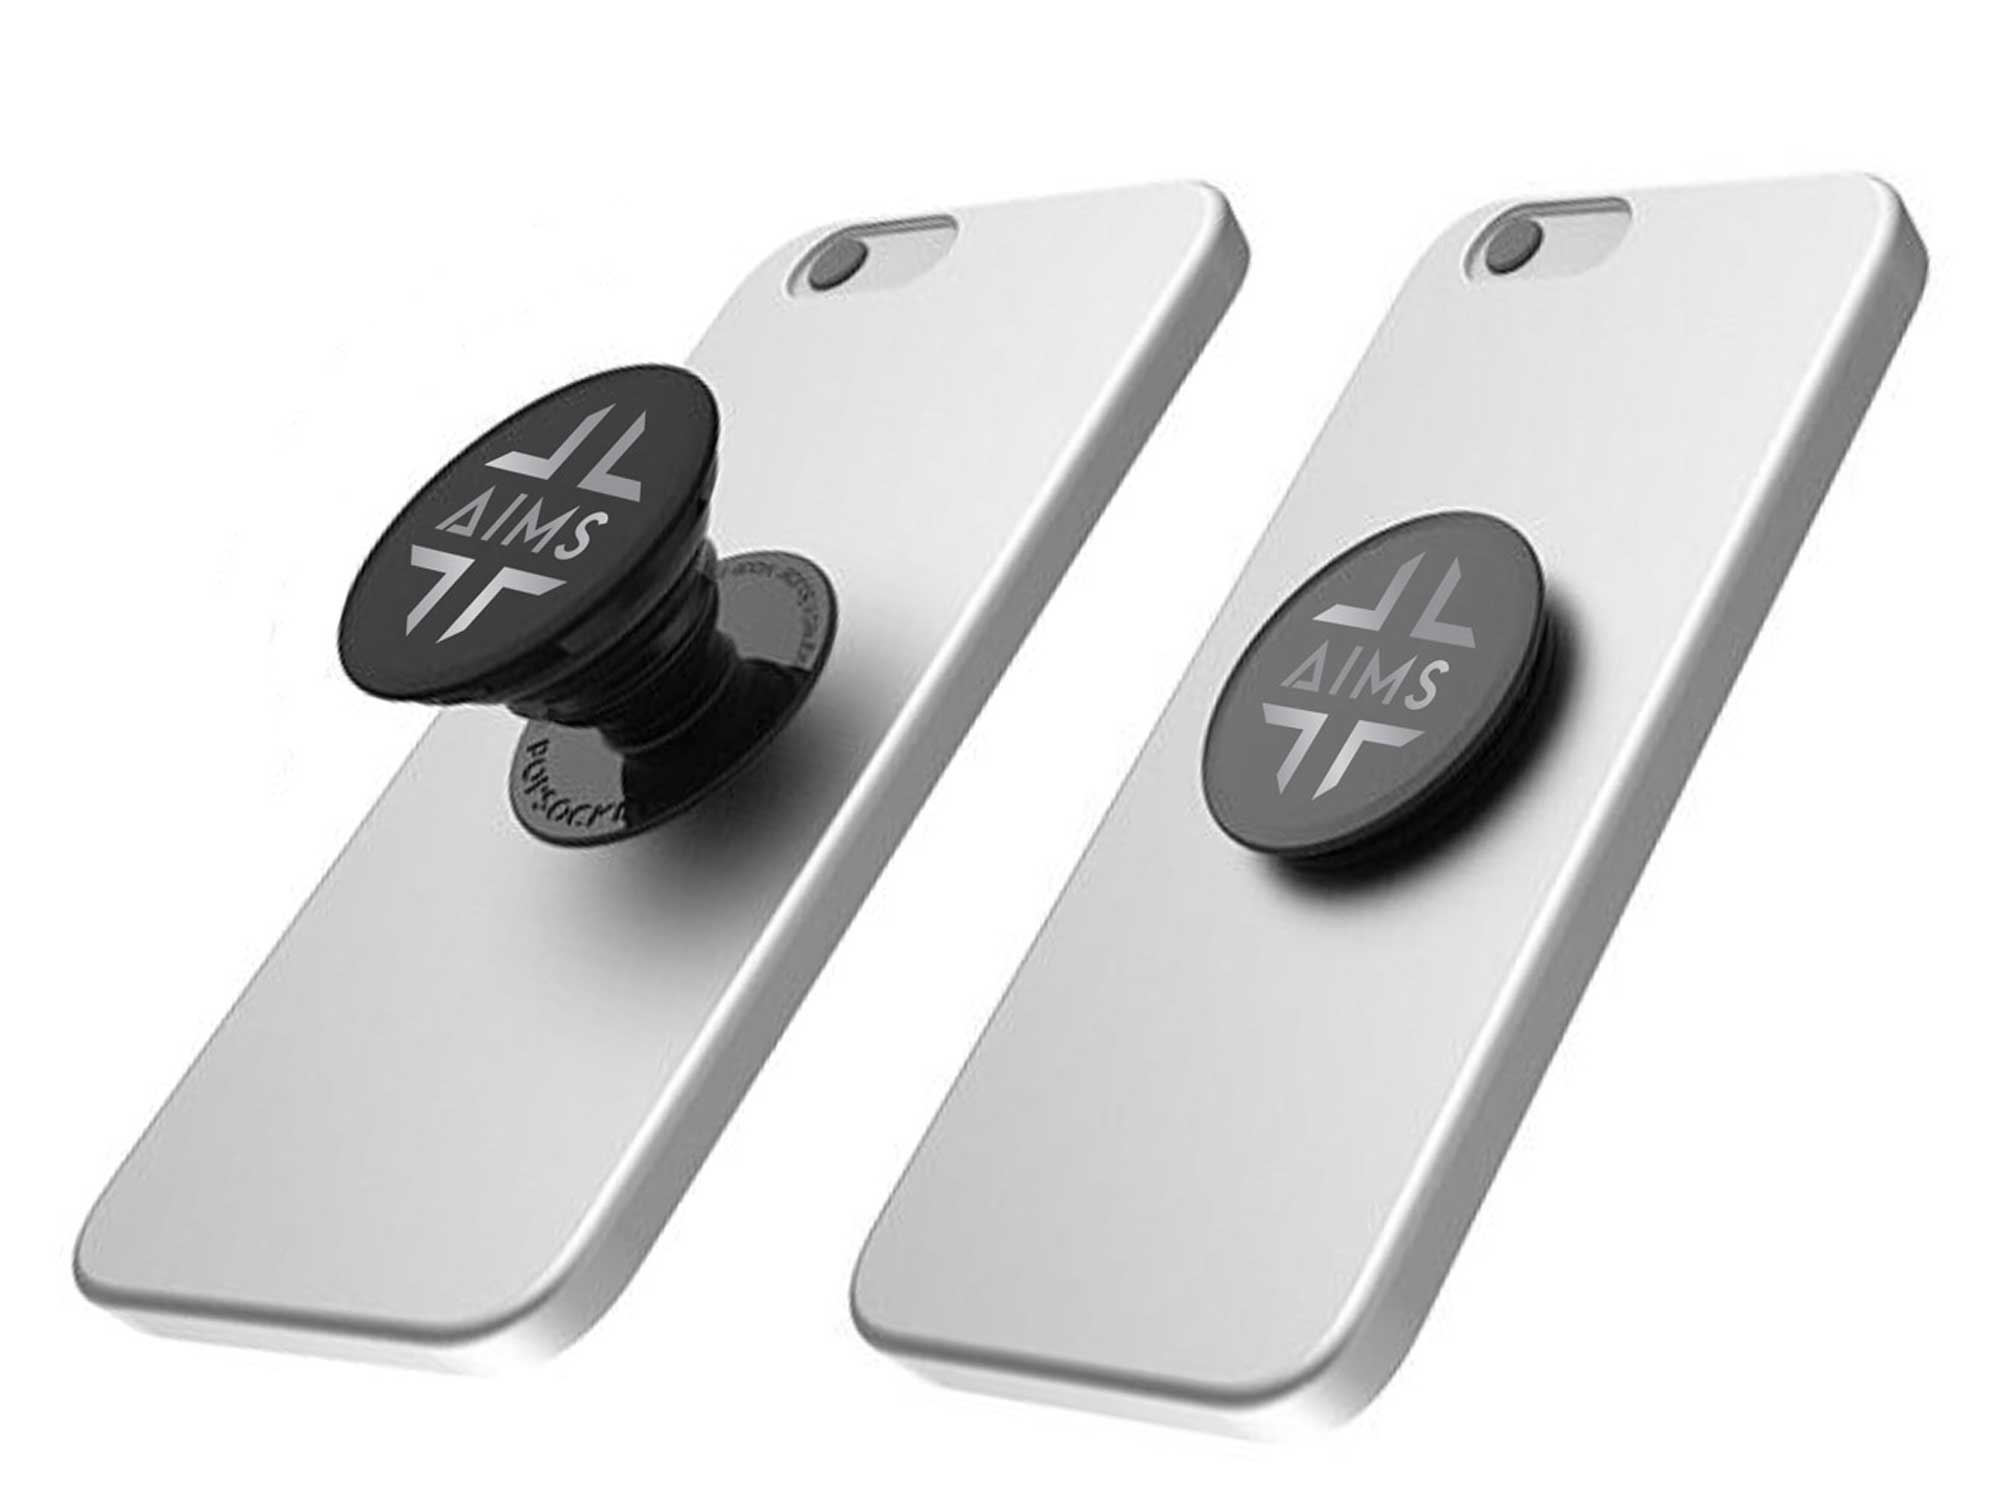 Corporate swag popsocket phone holder promotion item for ARC Resources to launch the AIMS app to employees